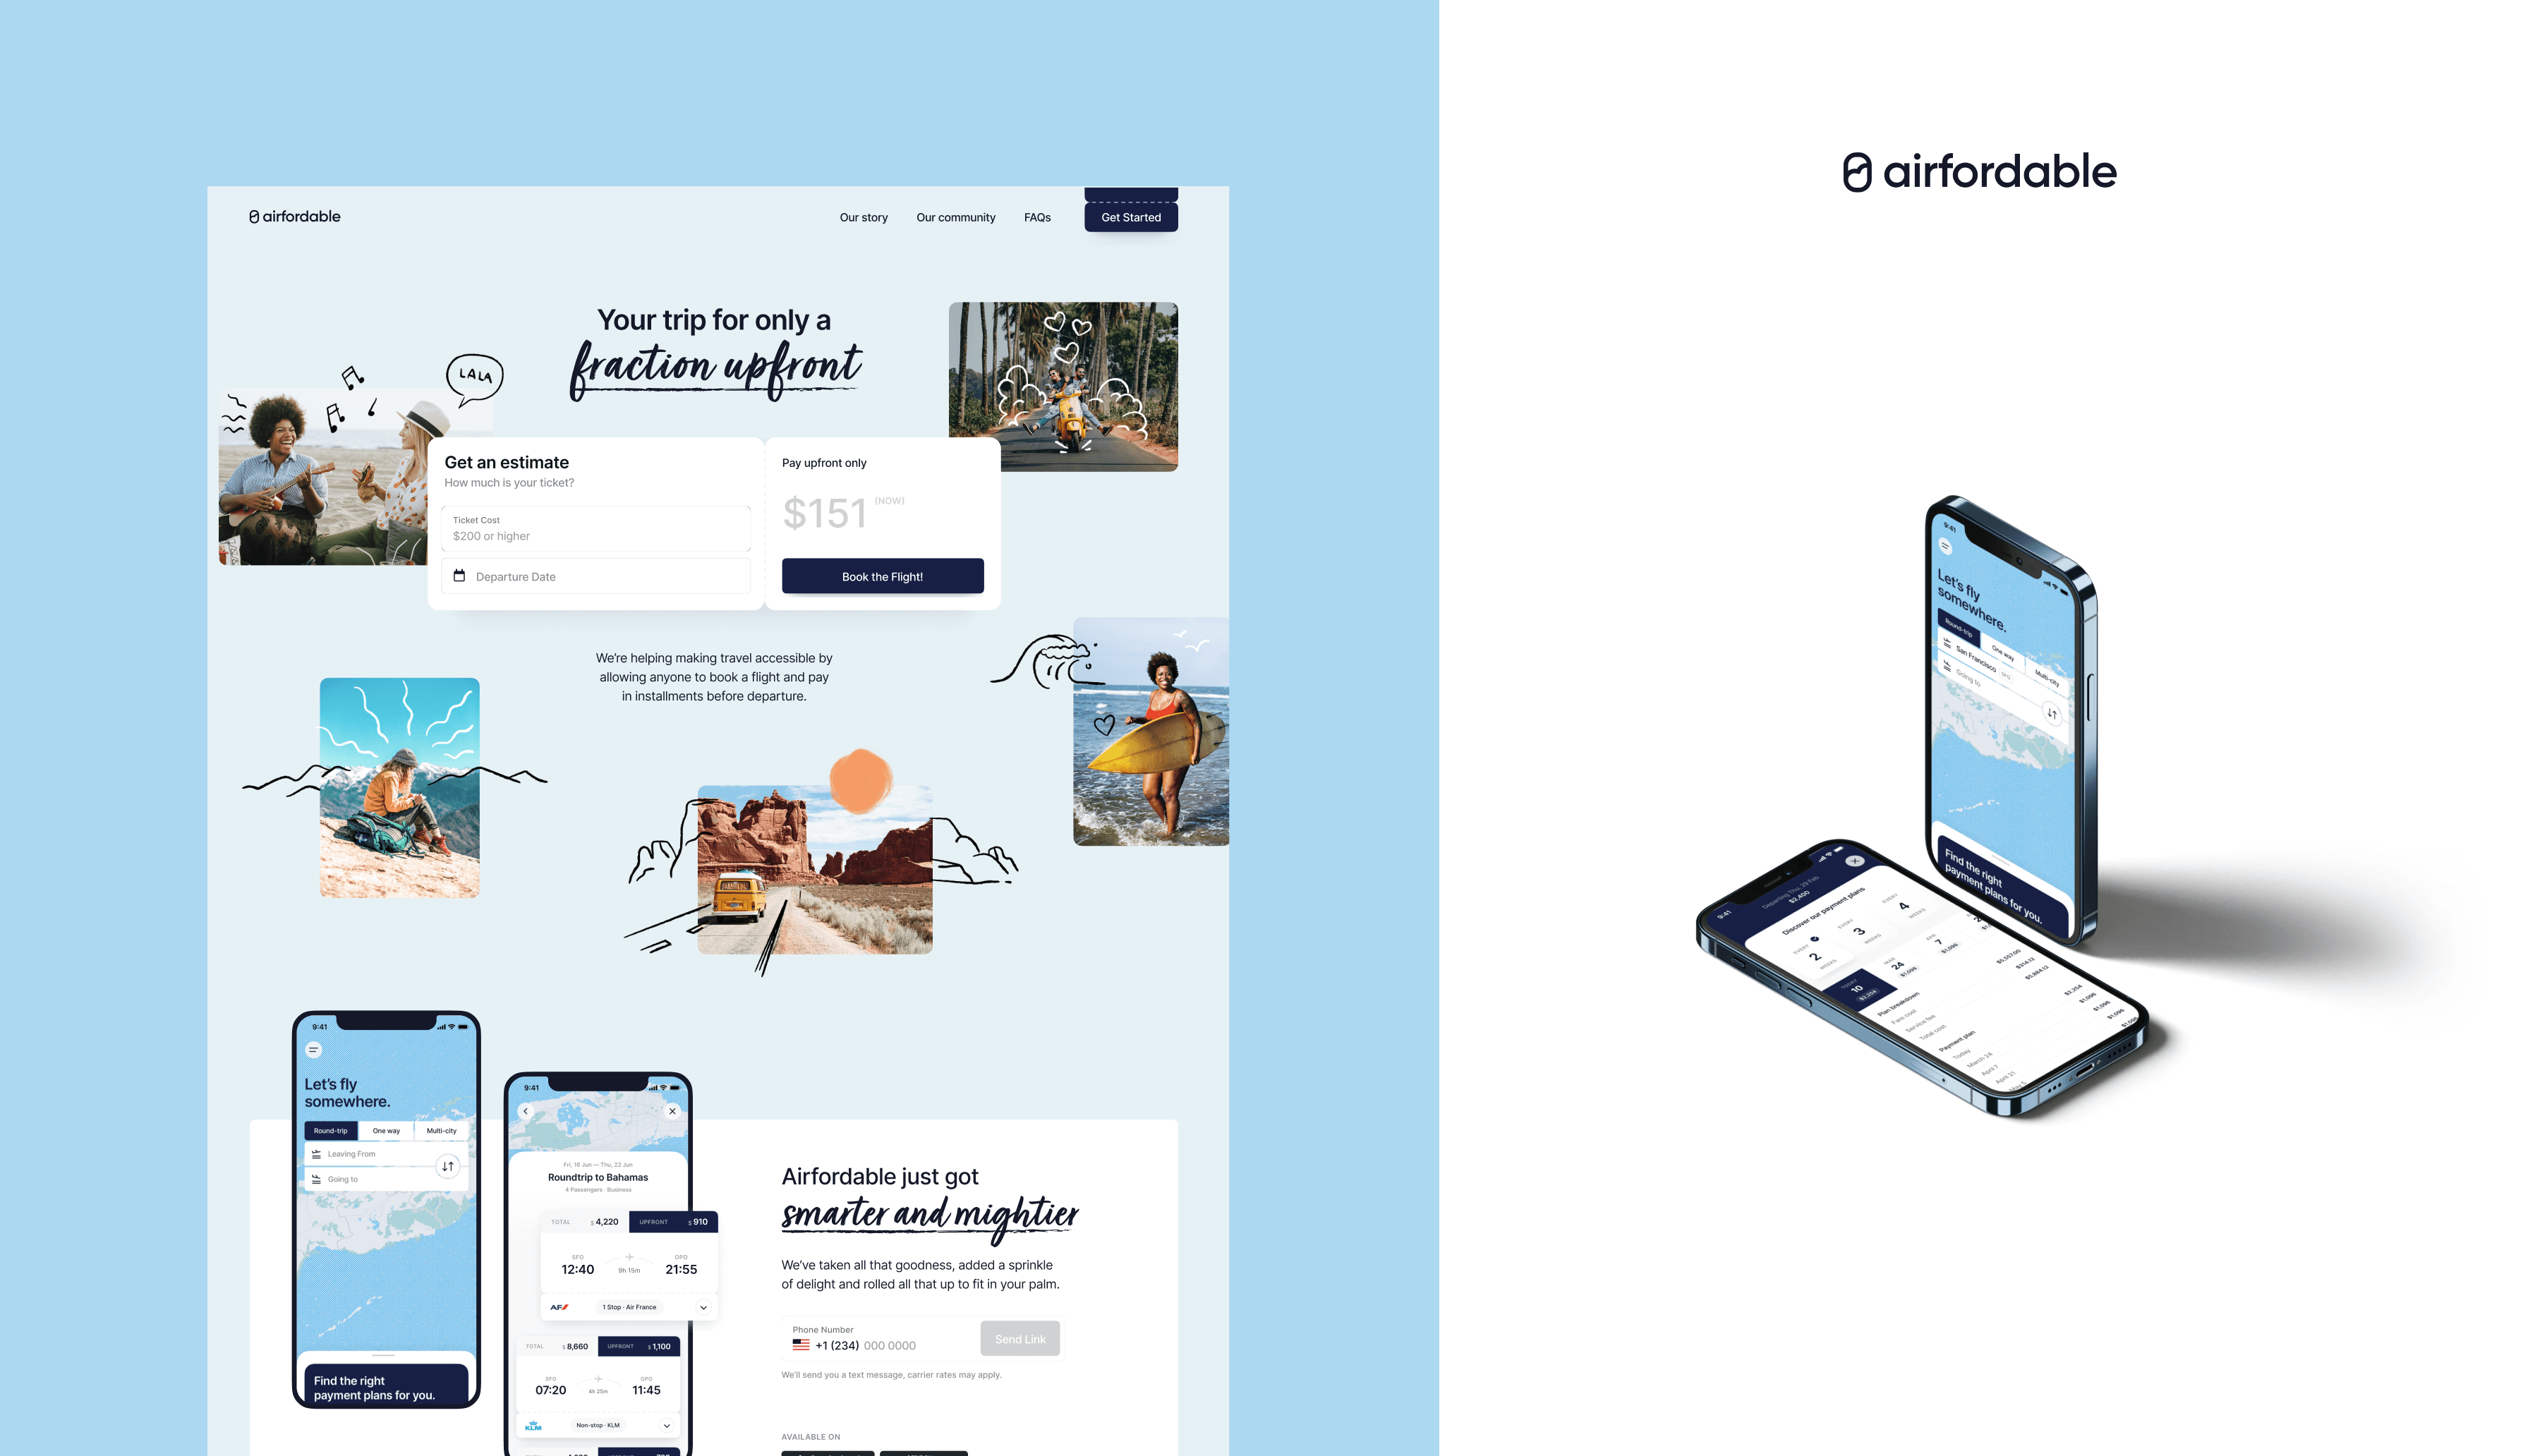 Airfordable app and website images